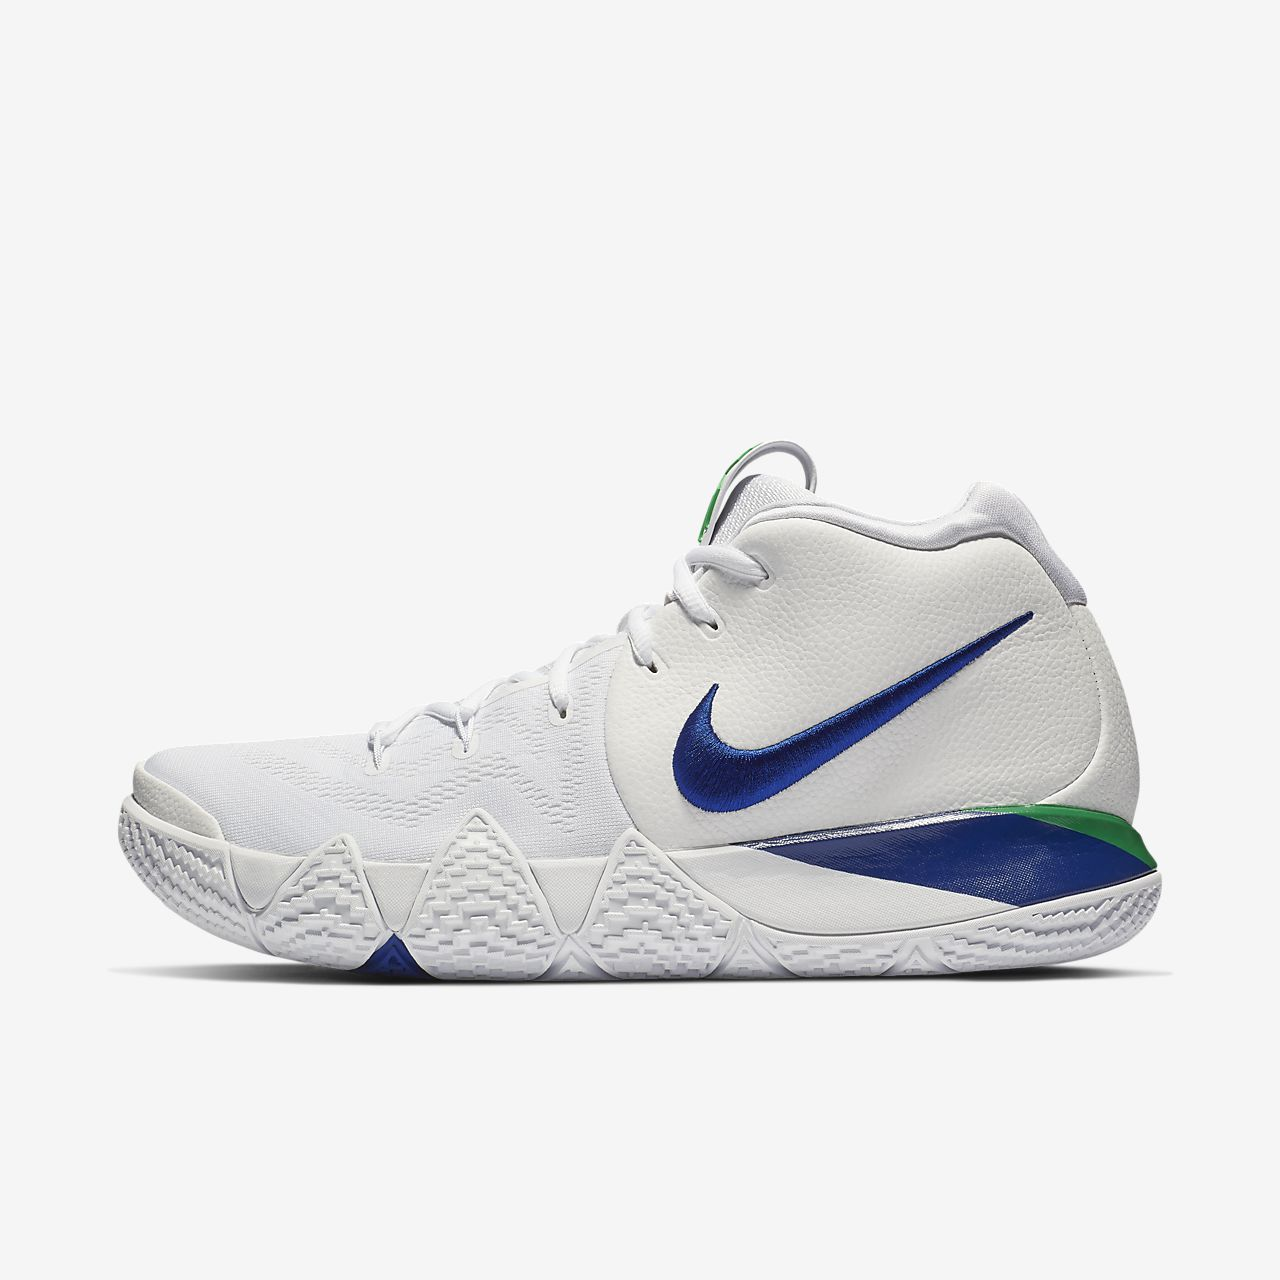 nike shoes price in qatar riyals to philippine 931092